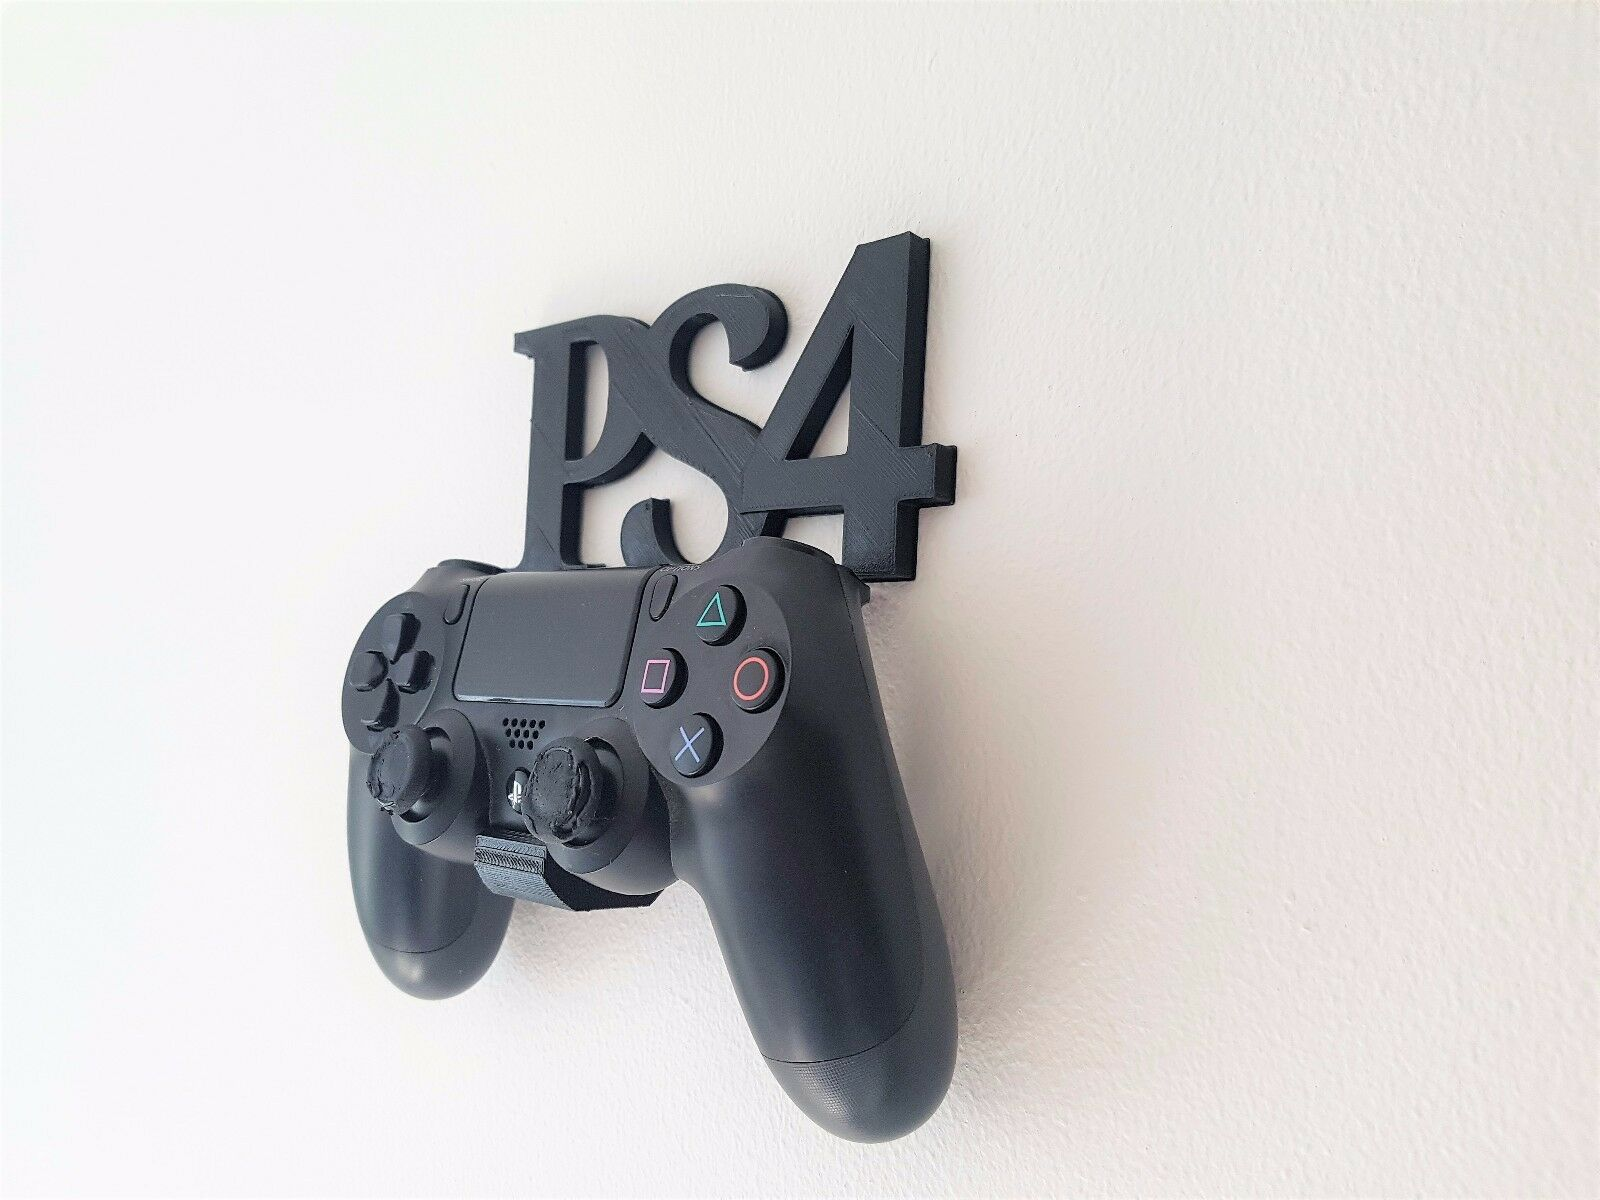 Named Wall Mount / Holder For PS4 Playstation 4 Controller Gamepad